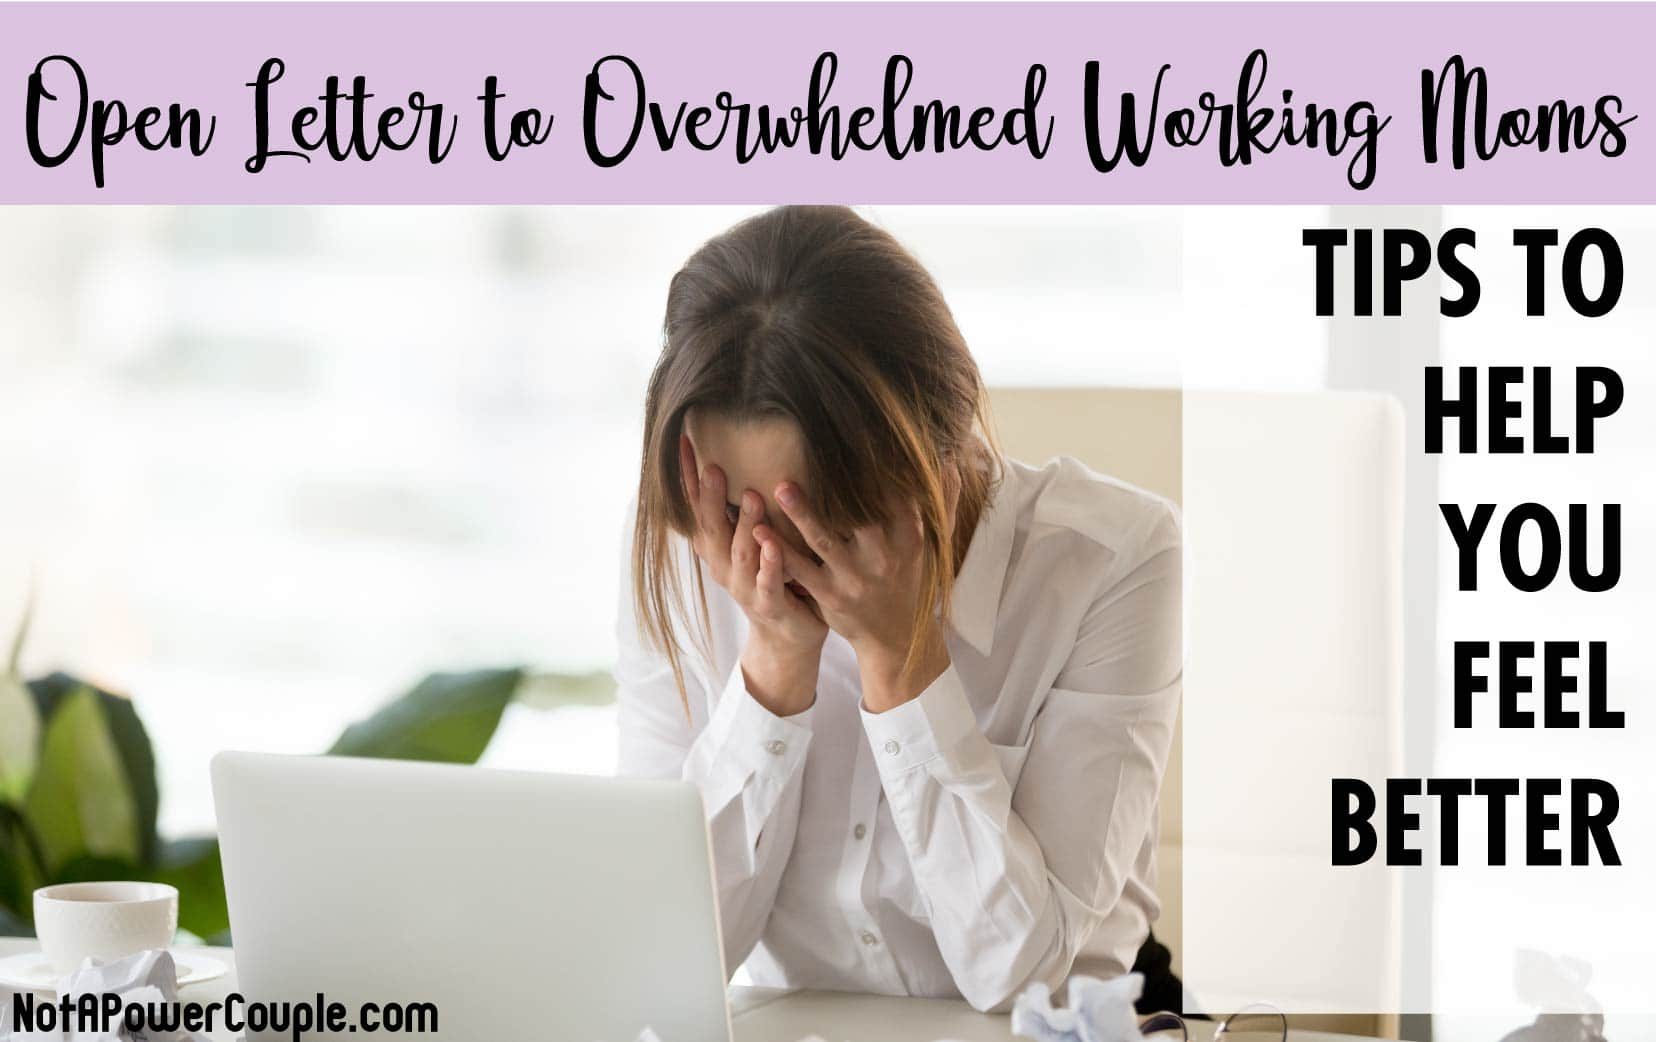 Open Letter To Overwhelmed Working Moms - Tips to Make You Feel Better